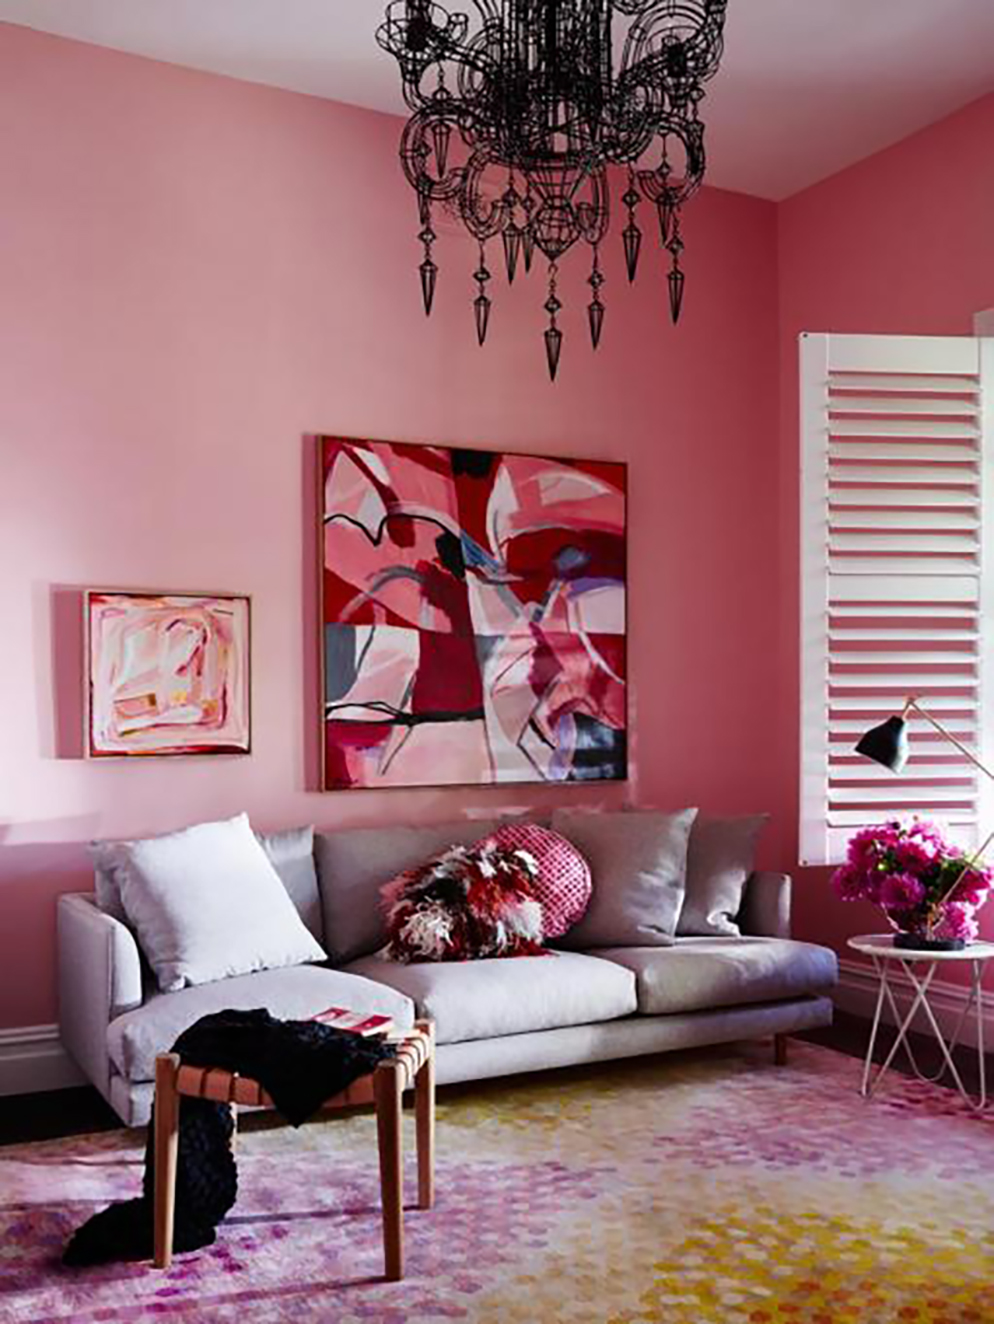 Warm up your home with pink wall colour - Aliz's Wonderland